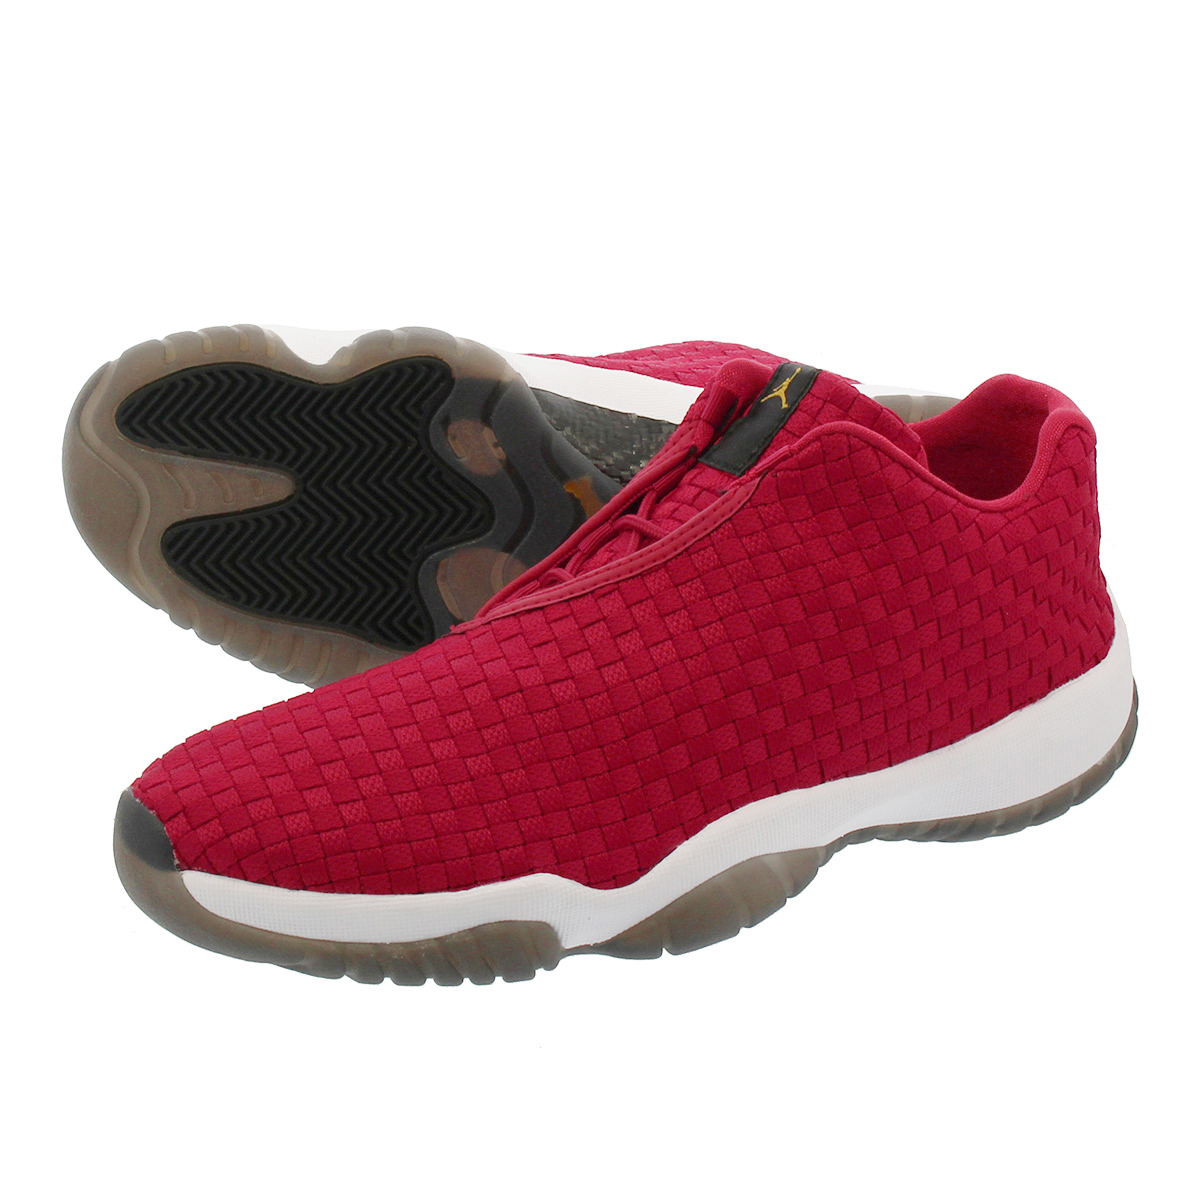 2814b332db9 NIKE AIR JORDAN FUTURE LOW Nike Air Jordan future low GYM RED/WHITE/BLACK  ...